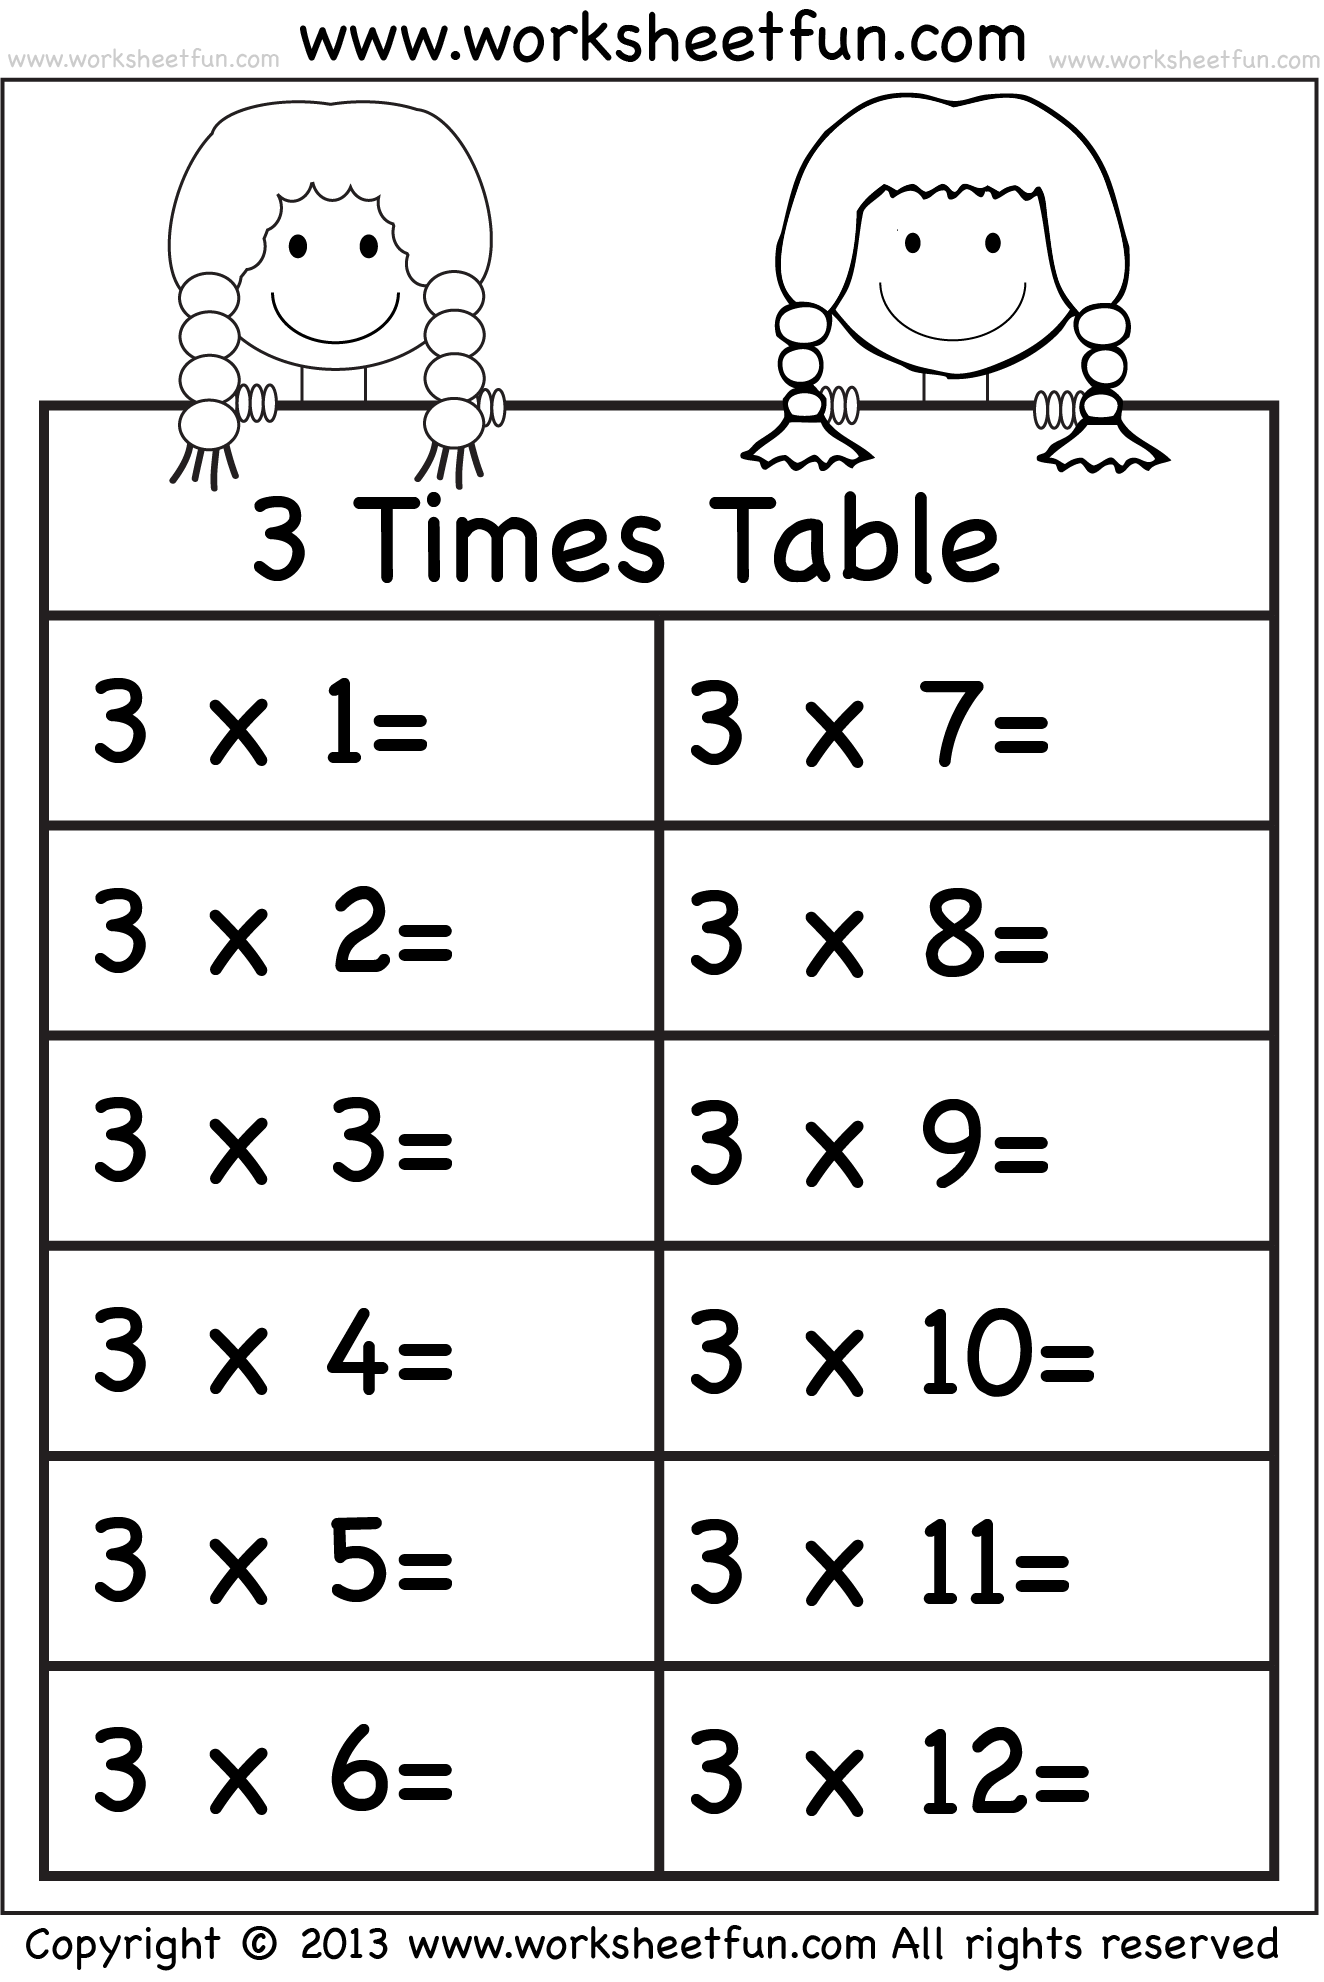 Multiplication Worksheets For 3 Times Tables 1275976